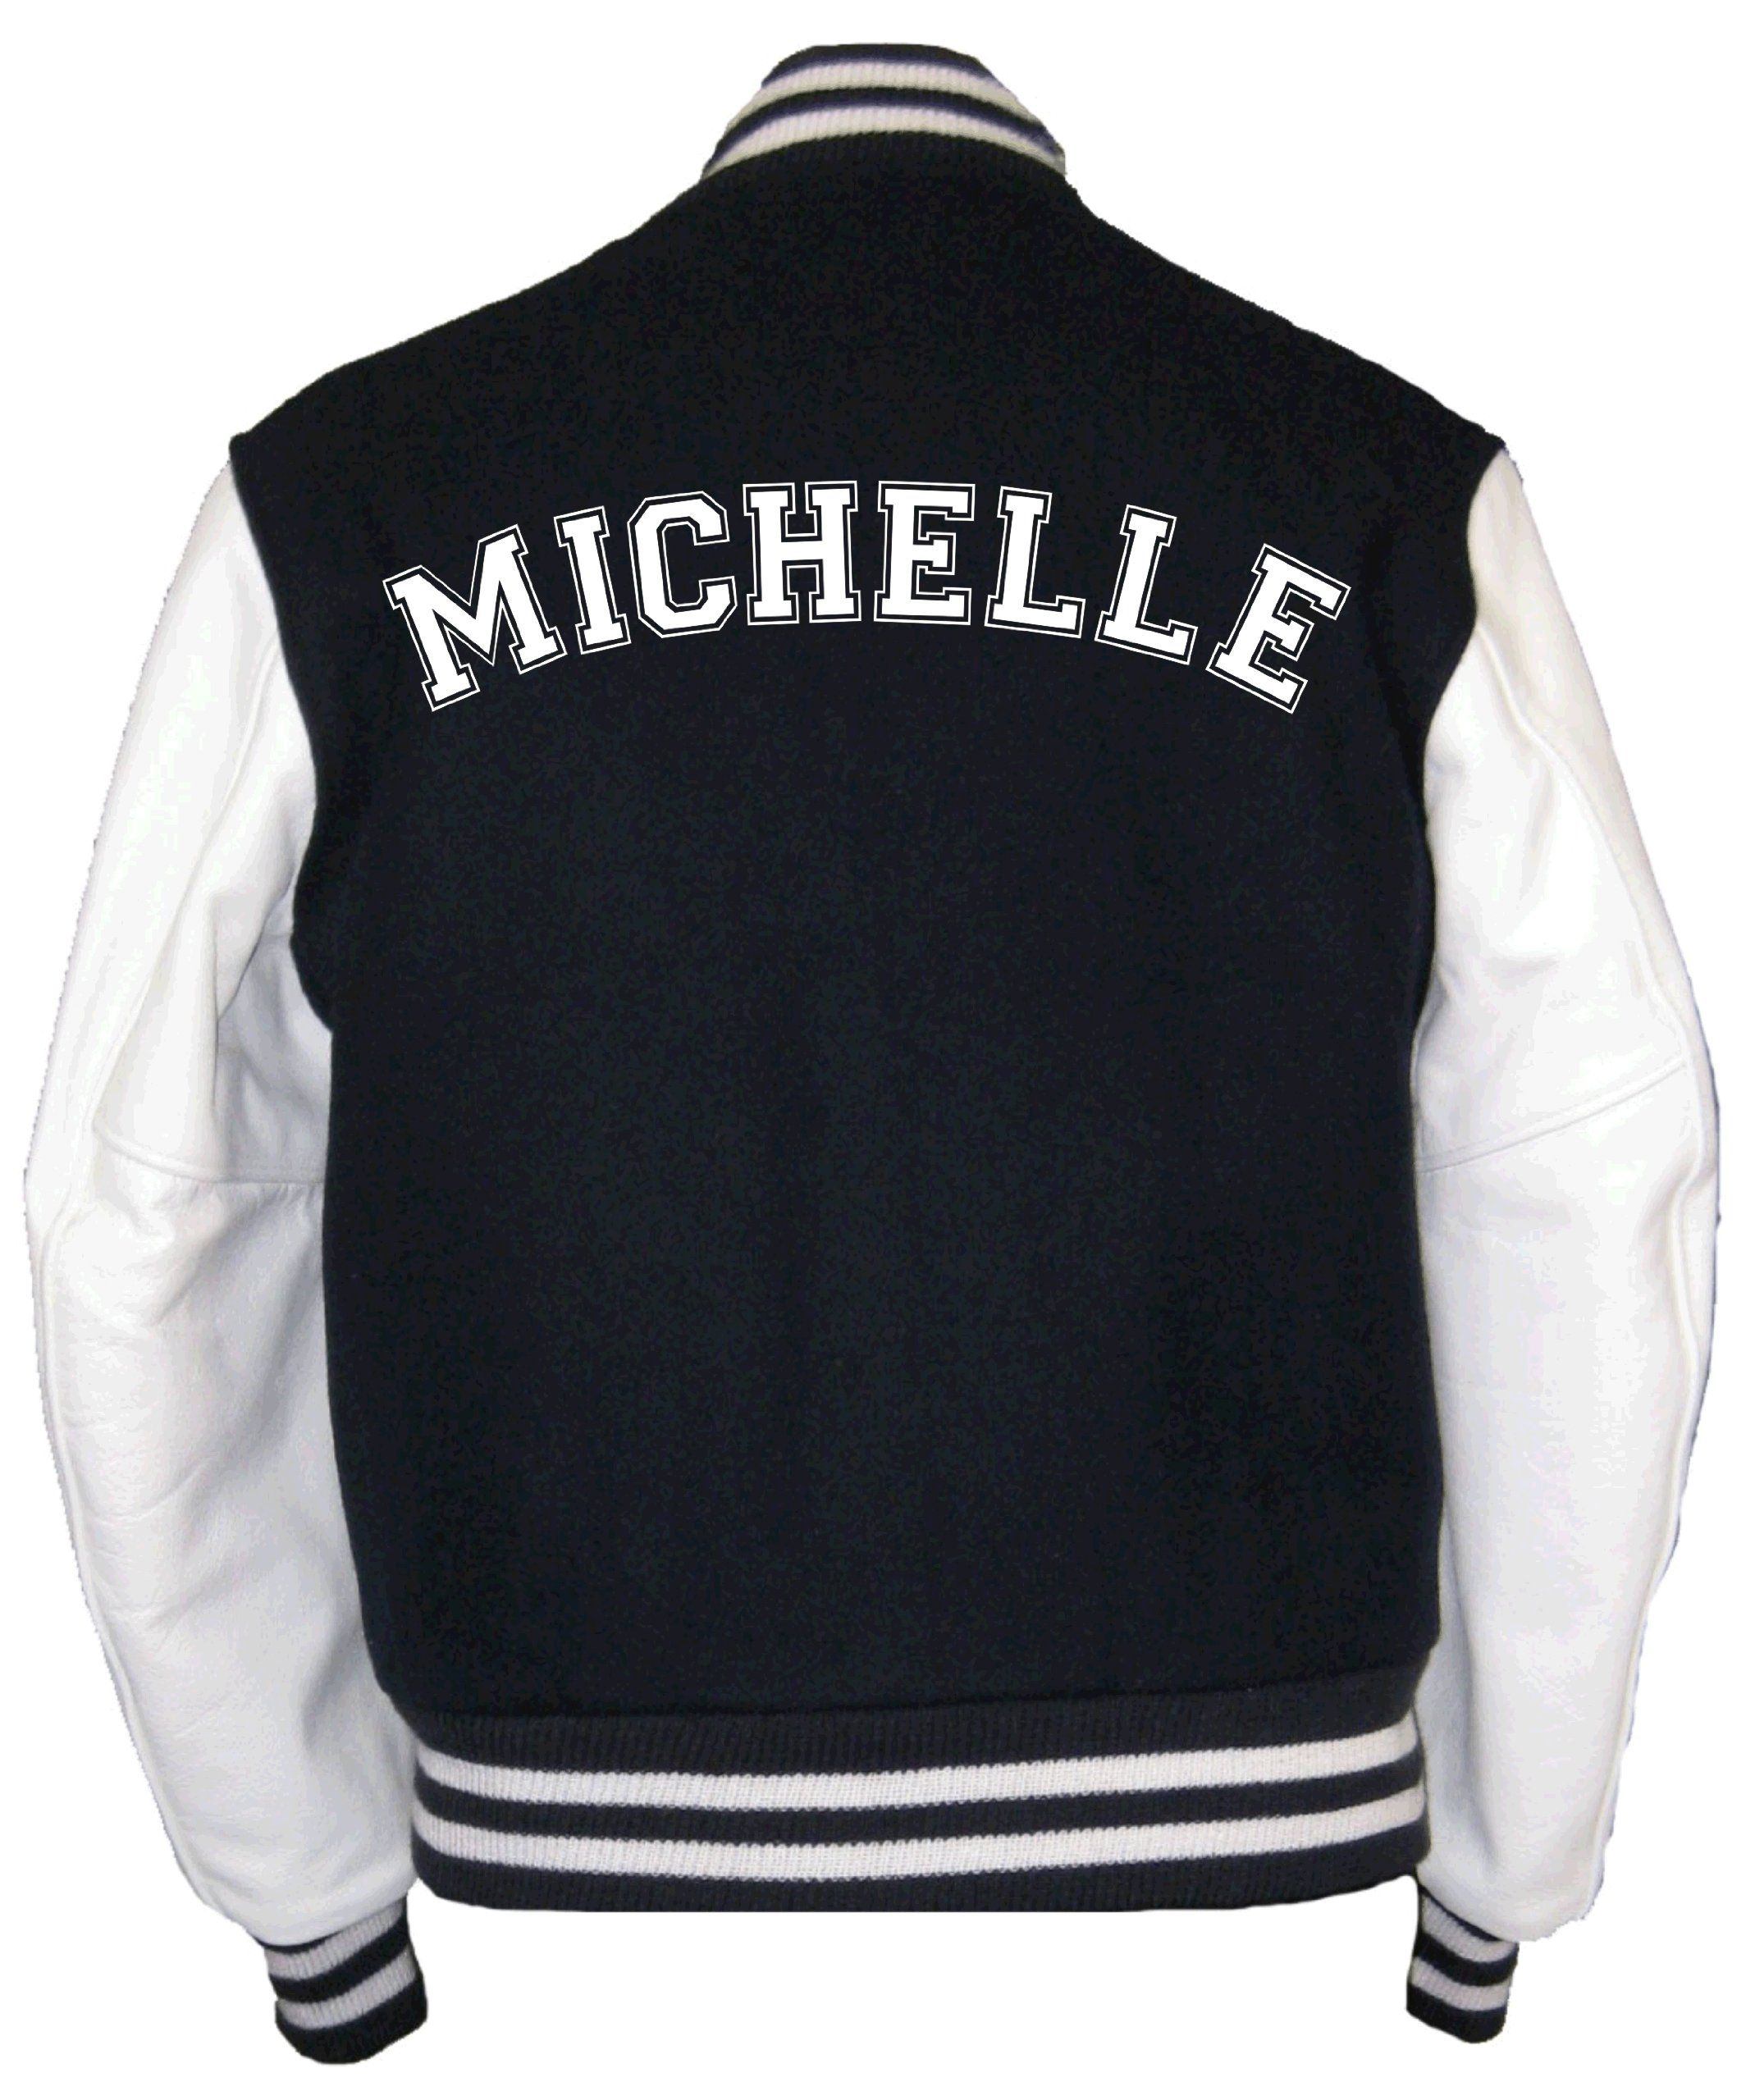 Personalized Varsity/college/ baseball jacket with name on back ...